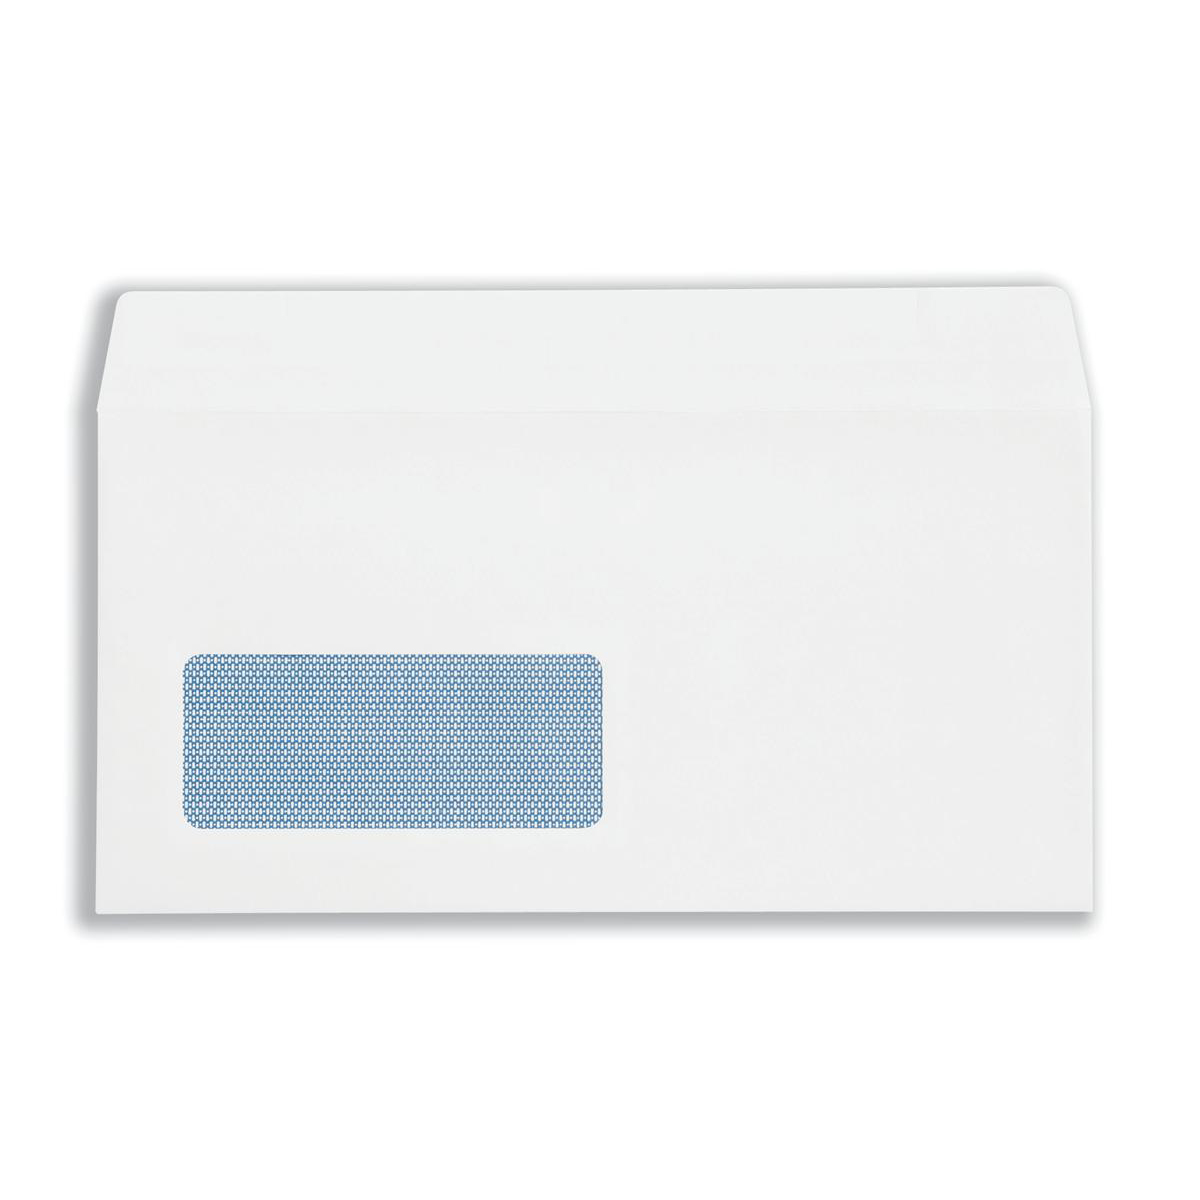 Plus Fabric Envelopes PEFC Wallet Self Seal Window 120gsm DL 220x110mm White Ref C23370 [Pack 250]